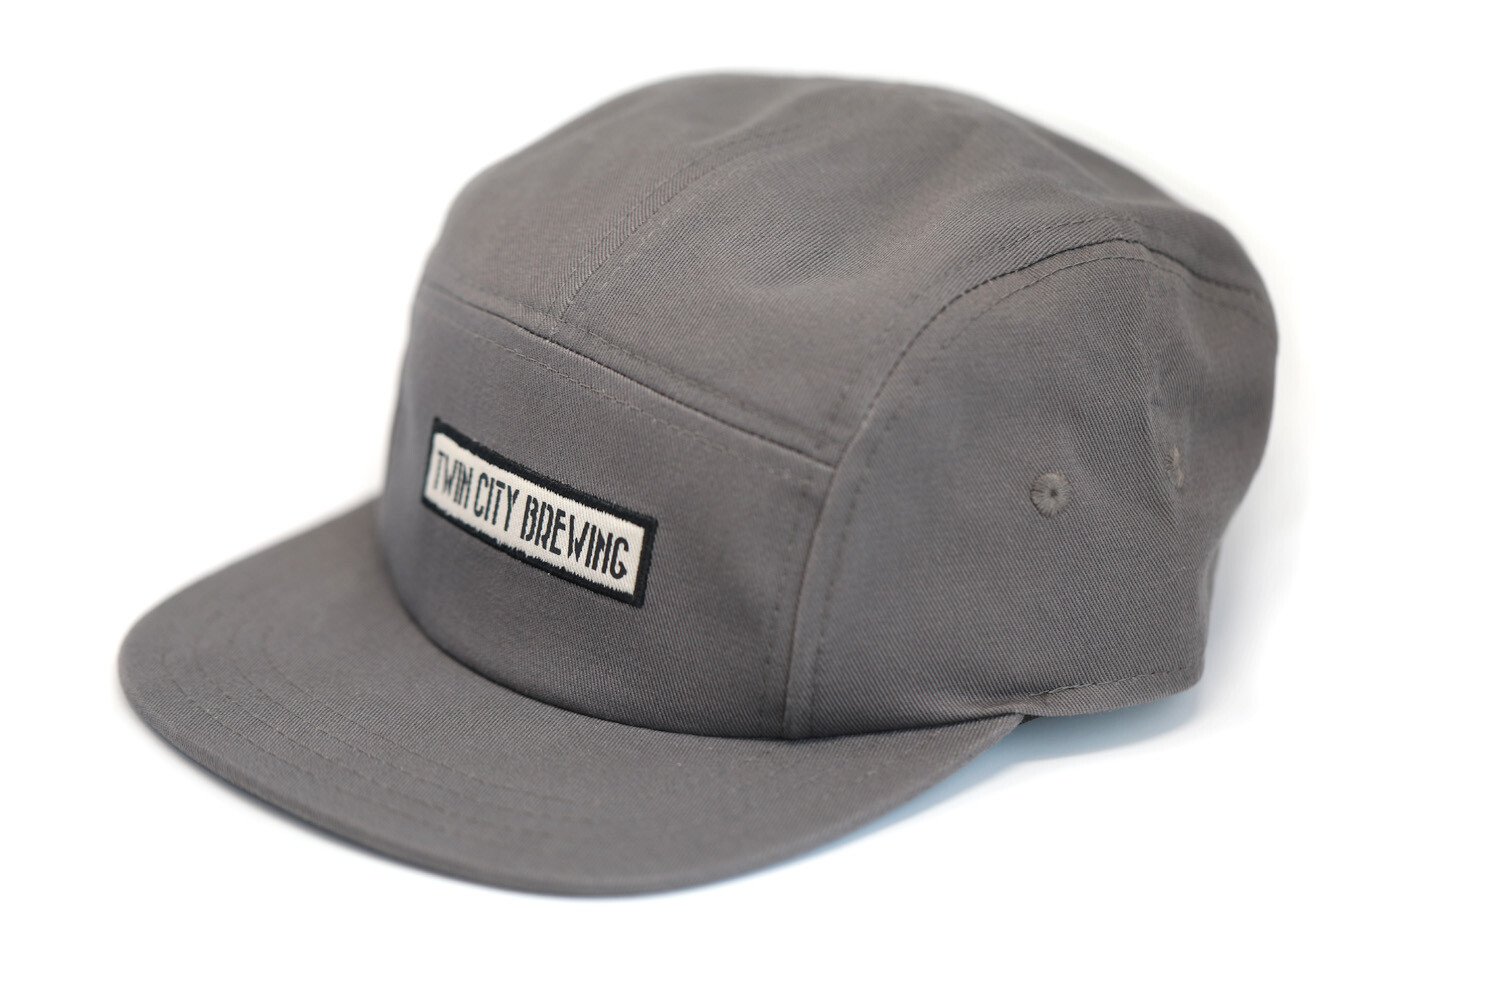 Merch - Runner Hat (Pukka)